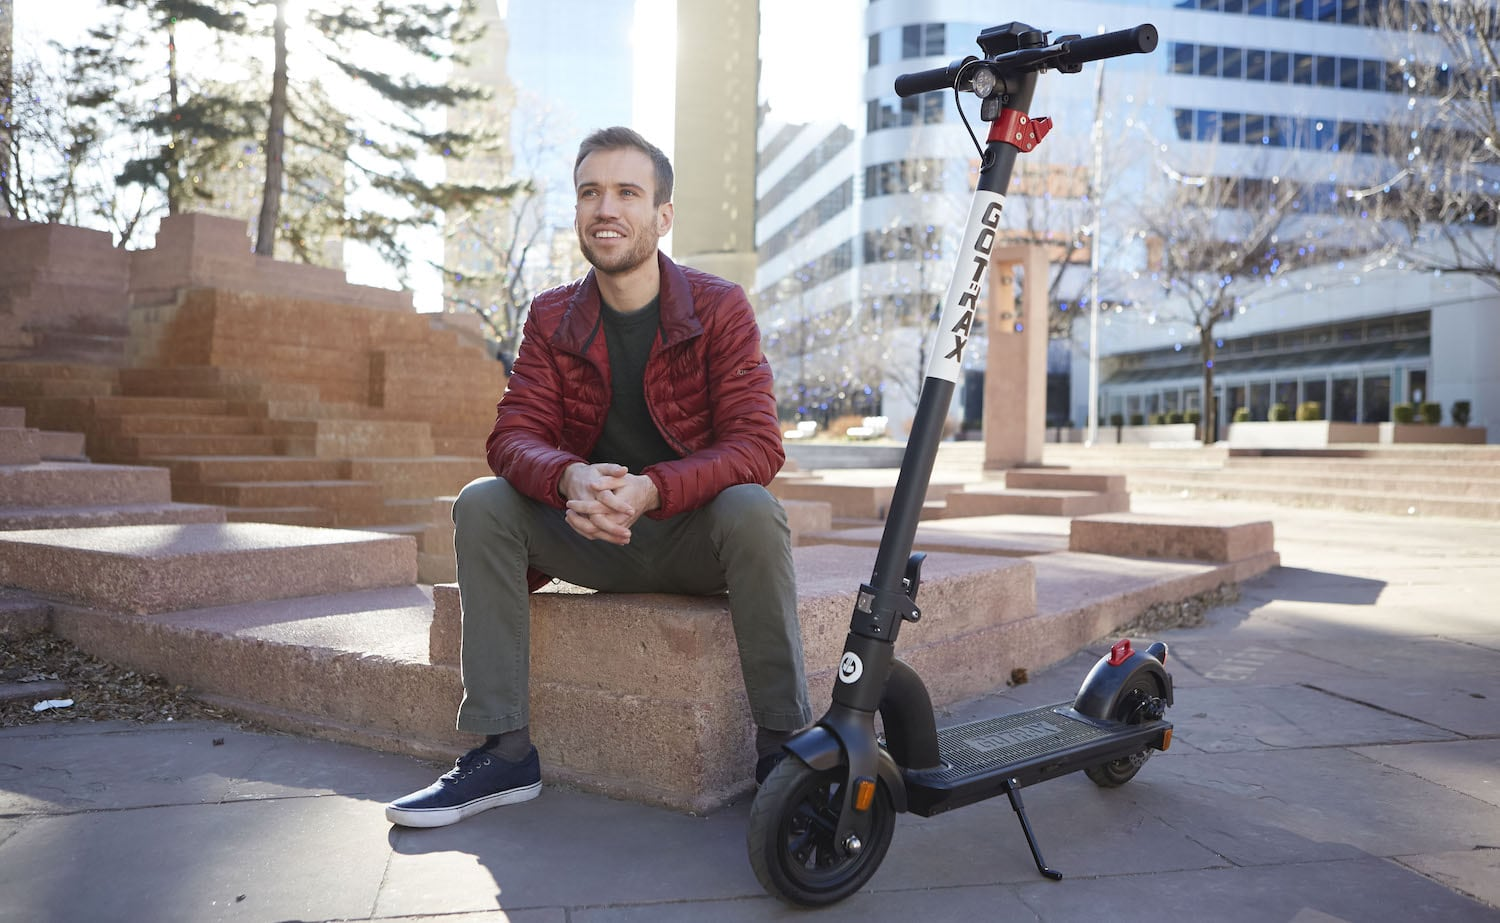 GOTRAX Xr Ultra Foldable Electric Scooter lets you ride at 15.5 miles per hour